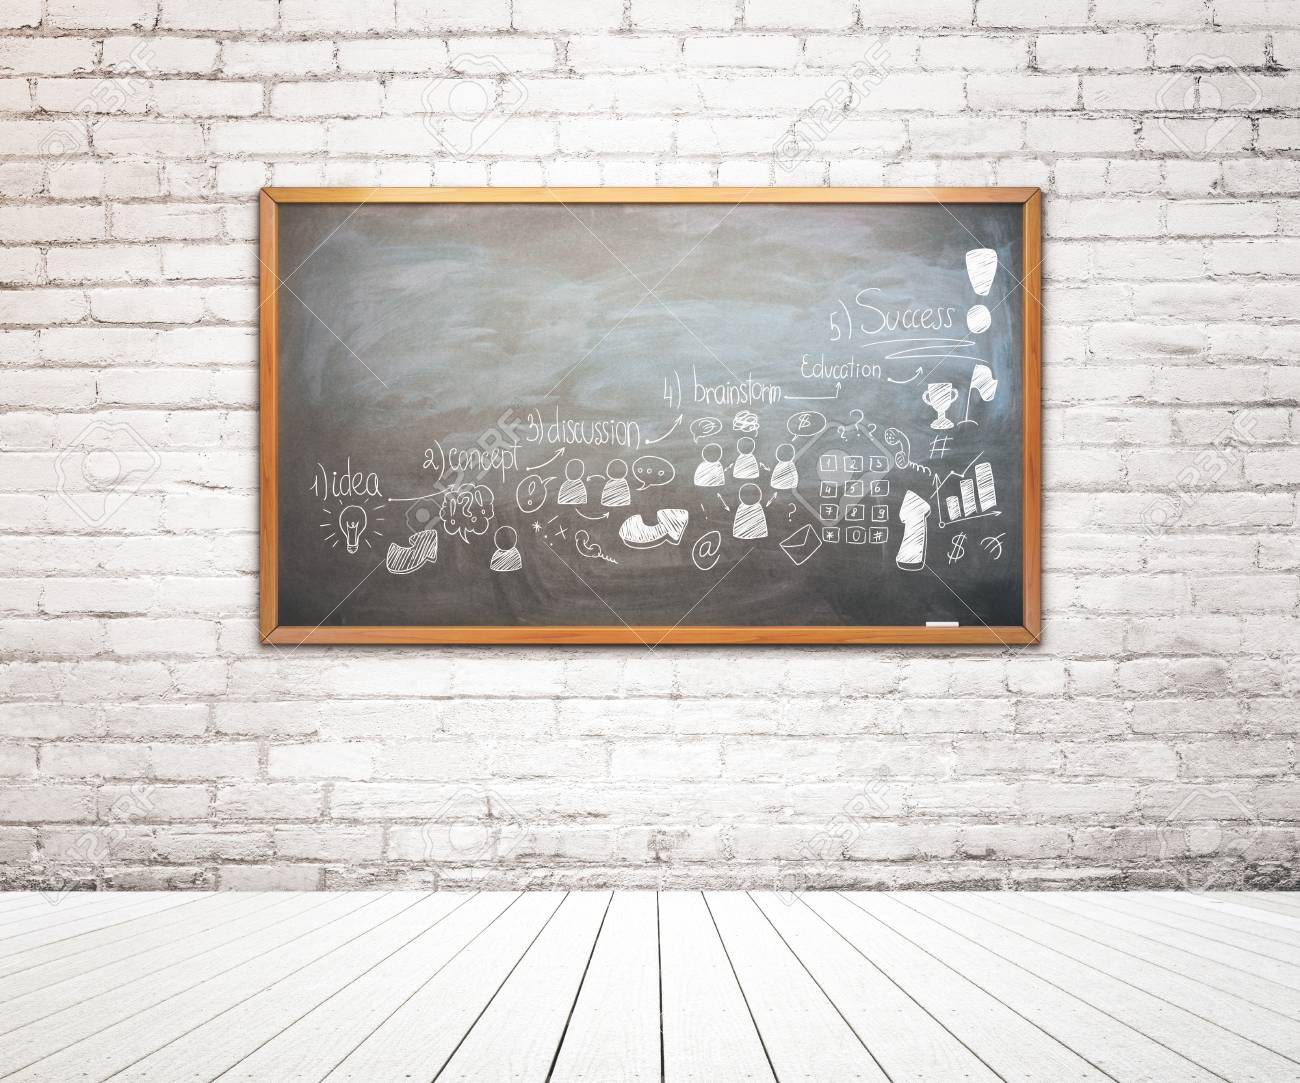 Brick Interior With Business Drawing On Framed Chalkboard ...